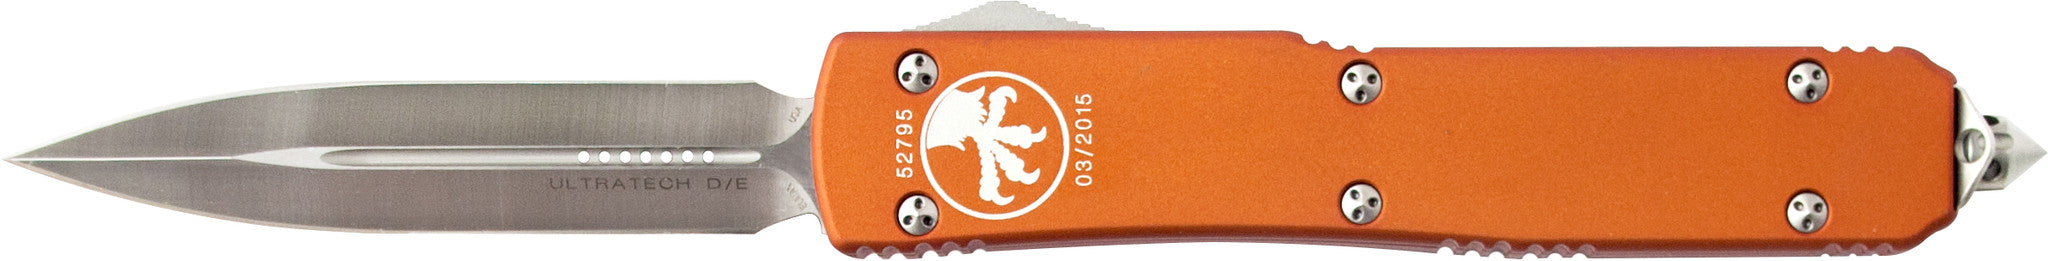 "Microtech Ultratech OTF Knife Orange D/E (3.4"" Satin) 122-4OR"